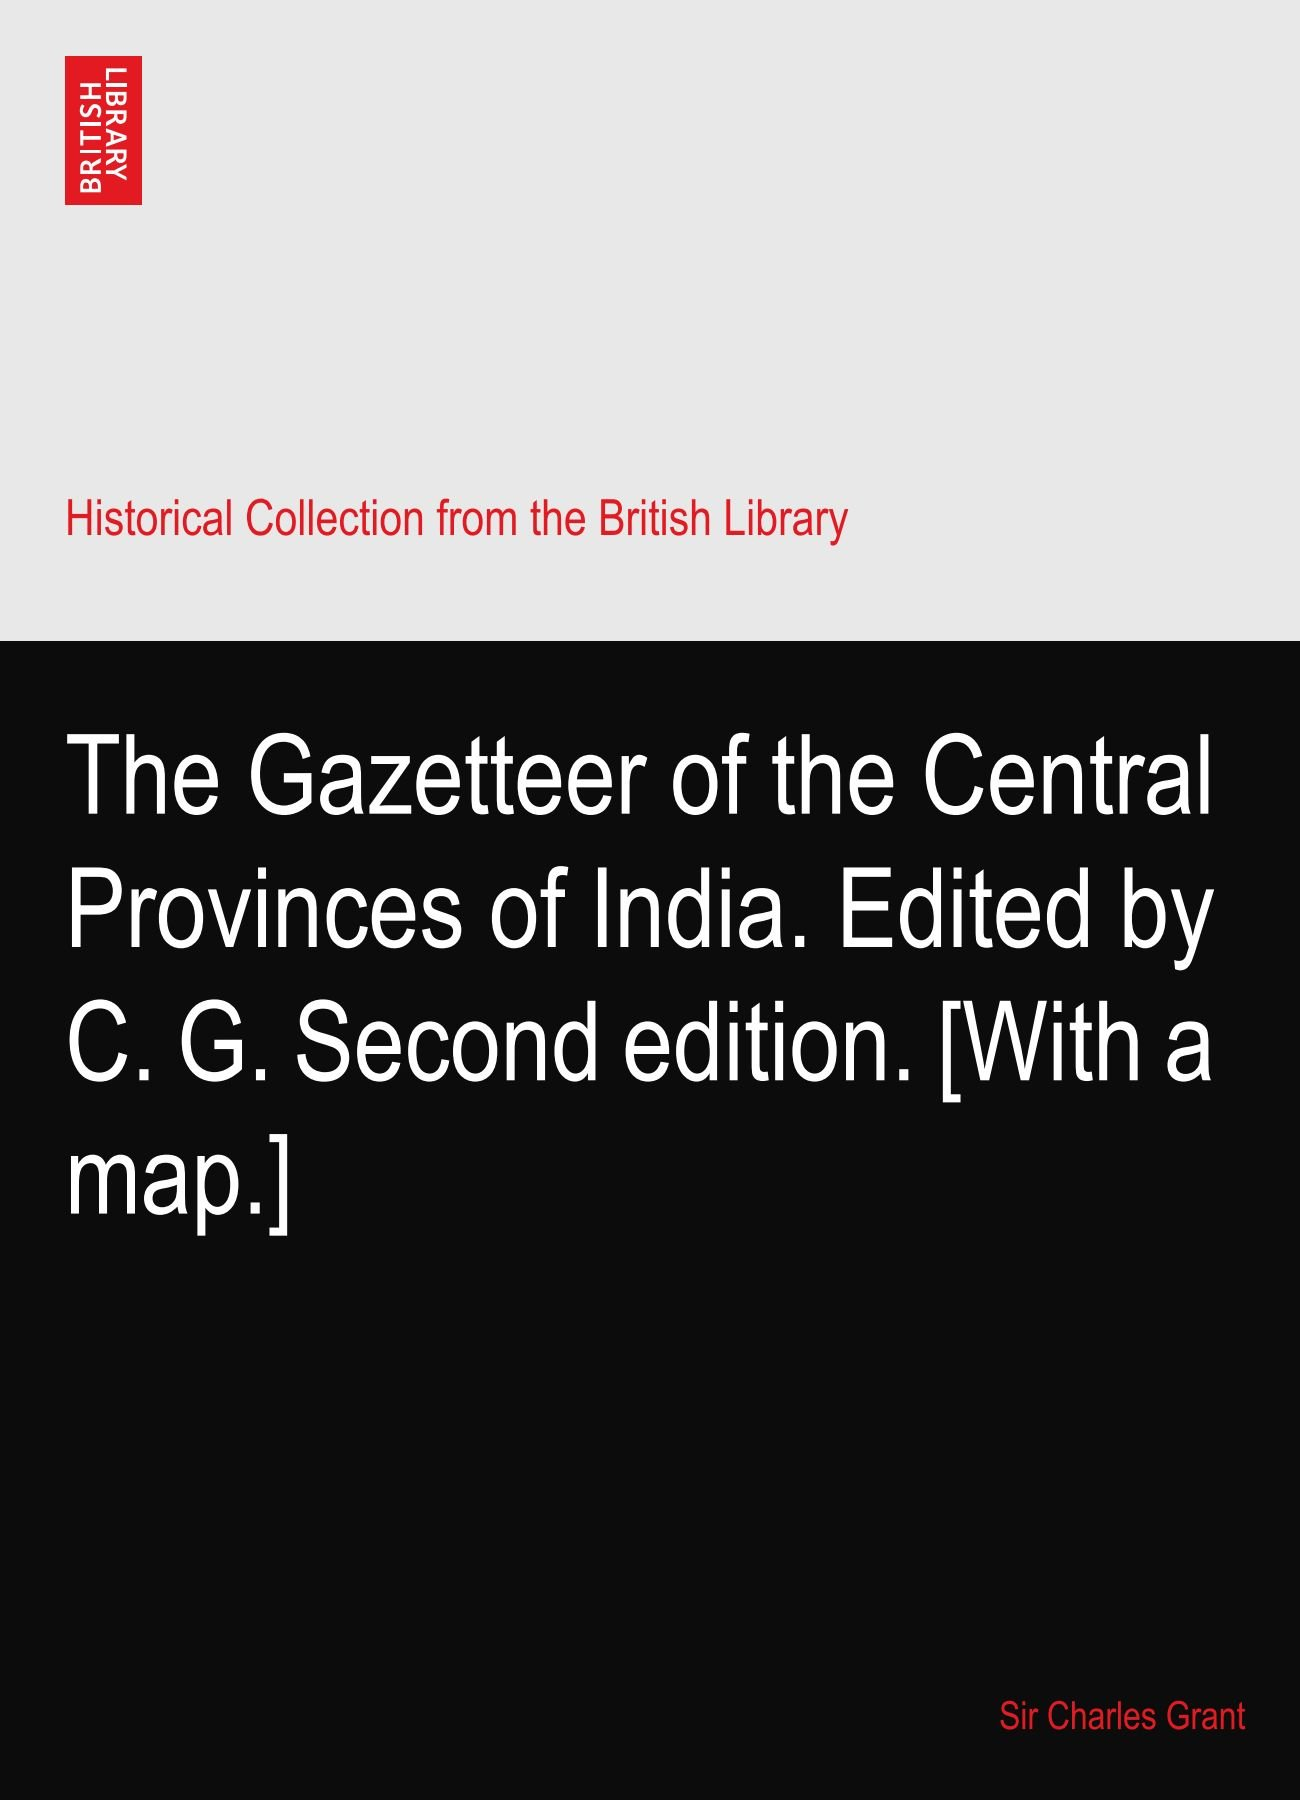 Download The Gazetteer of the Central Provinces of India. Edited by C. G. Second edition. [With a map.] PDF